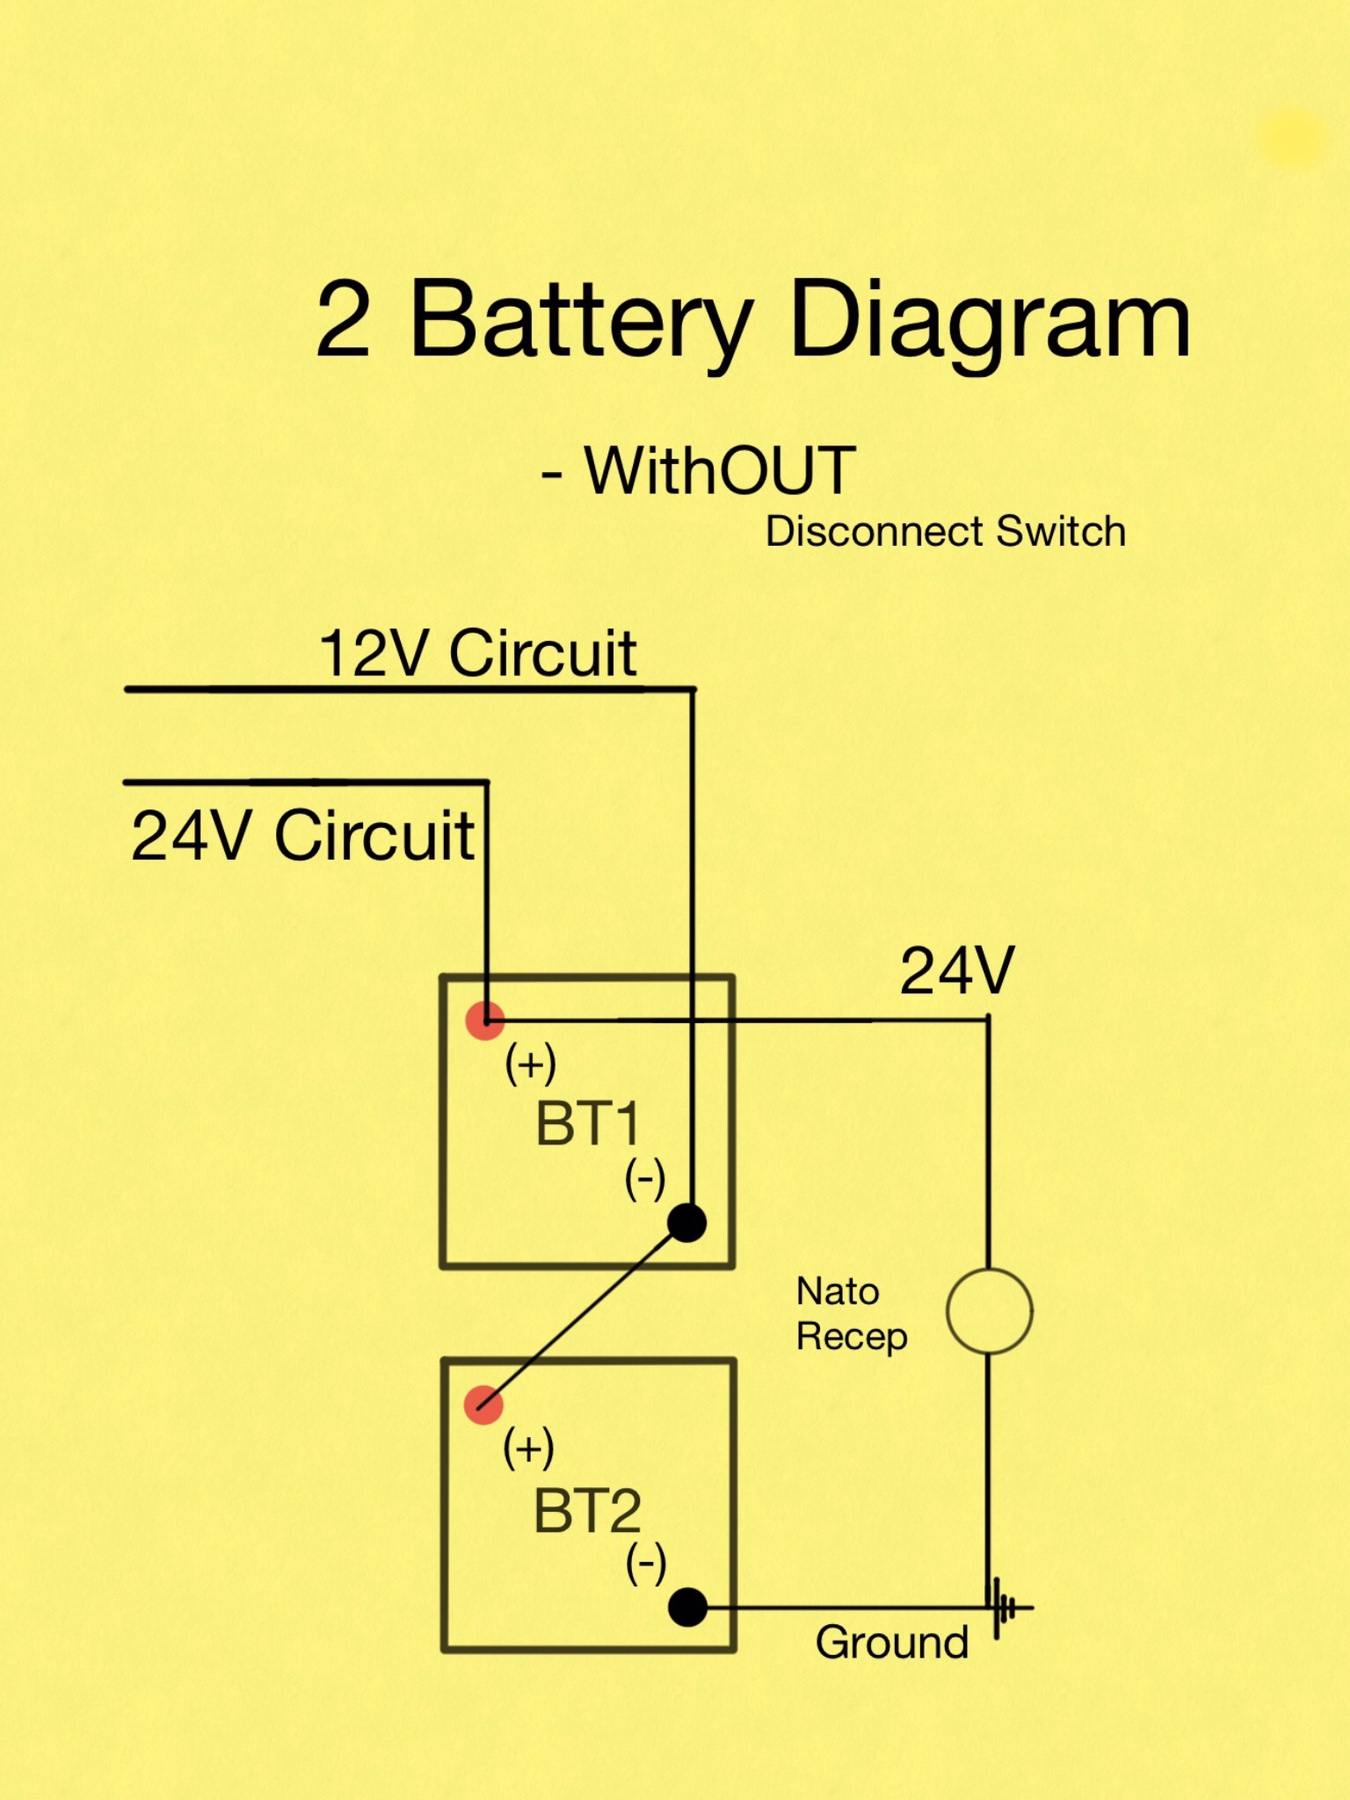 Fmtv battery hook up diagram page 5 sent from my ipad using tapatalk pooptronica